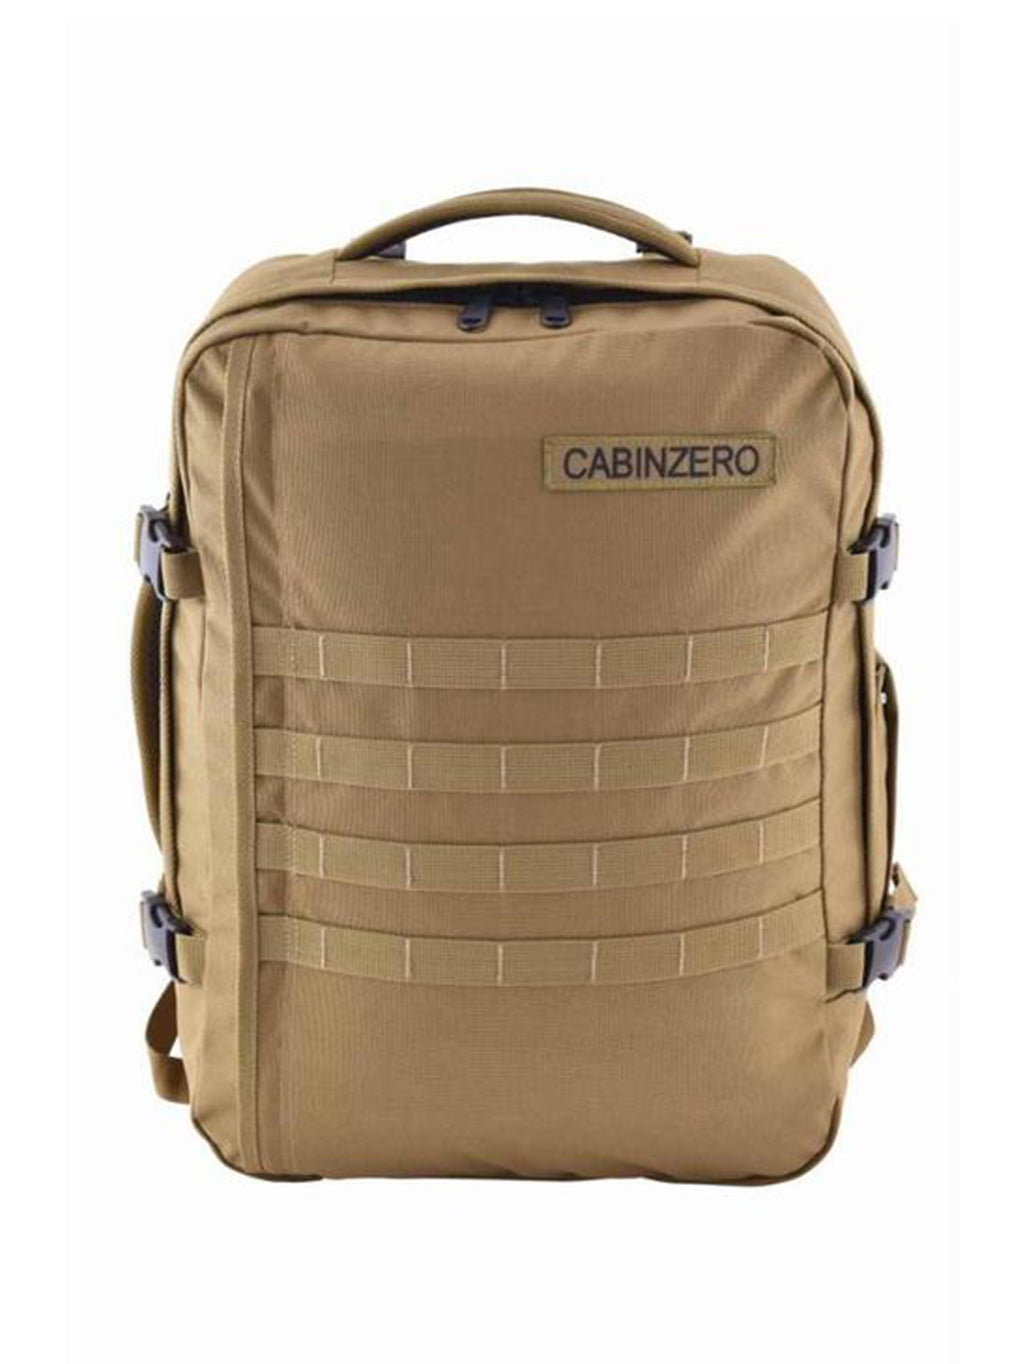 Cabinzero Military 36L in Desert Sand Color - This Is For Him